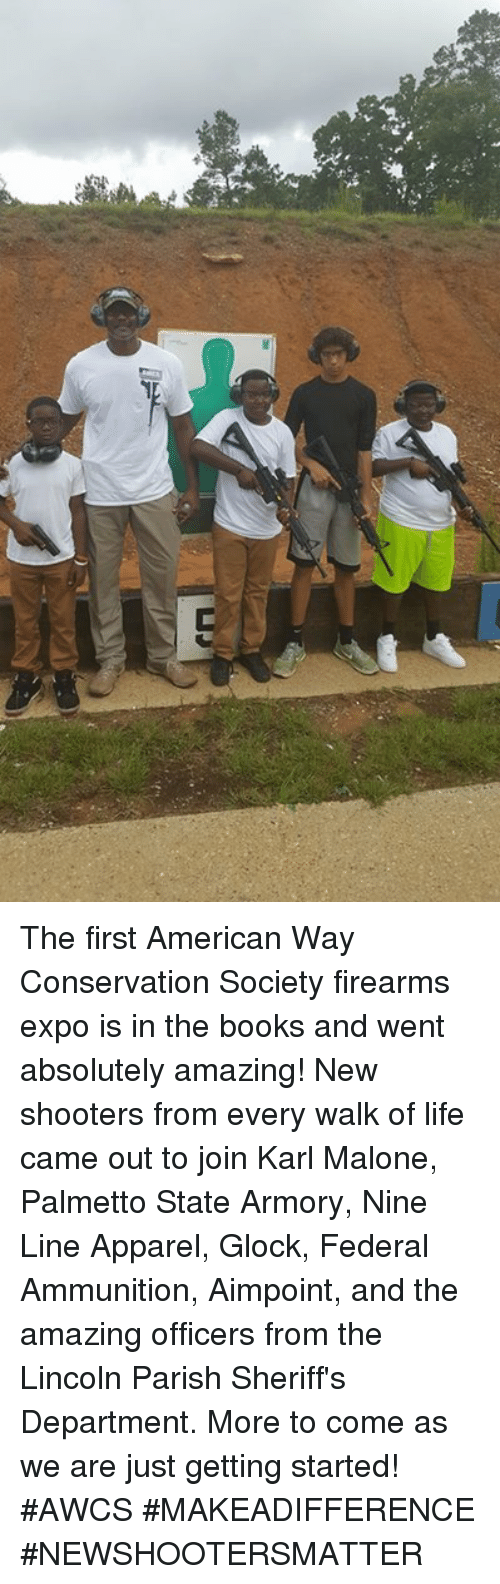 Karling: The first American Way Conservation Society firearms expo is in the books and went absolutely amazing!  New shooters from every walk of life came out to join Karl Malone, Palmetto State Armory, Nine Line Apparel, Glock, Federal Ammunition, Aimpoint, and the amazing officers from the Lincoln Parish Sheriff's Department.  More to come as we are just getting started!  #AWCS #MAKEADIFFERENCE #NEWSHOOTERSMATTER